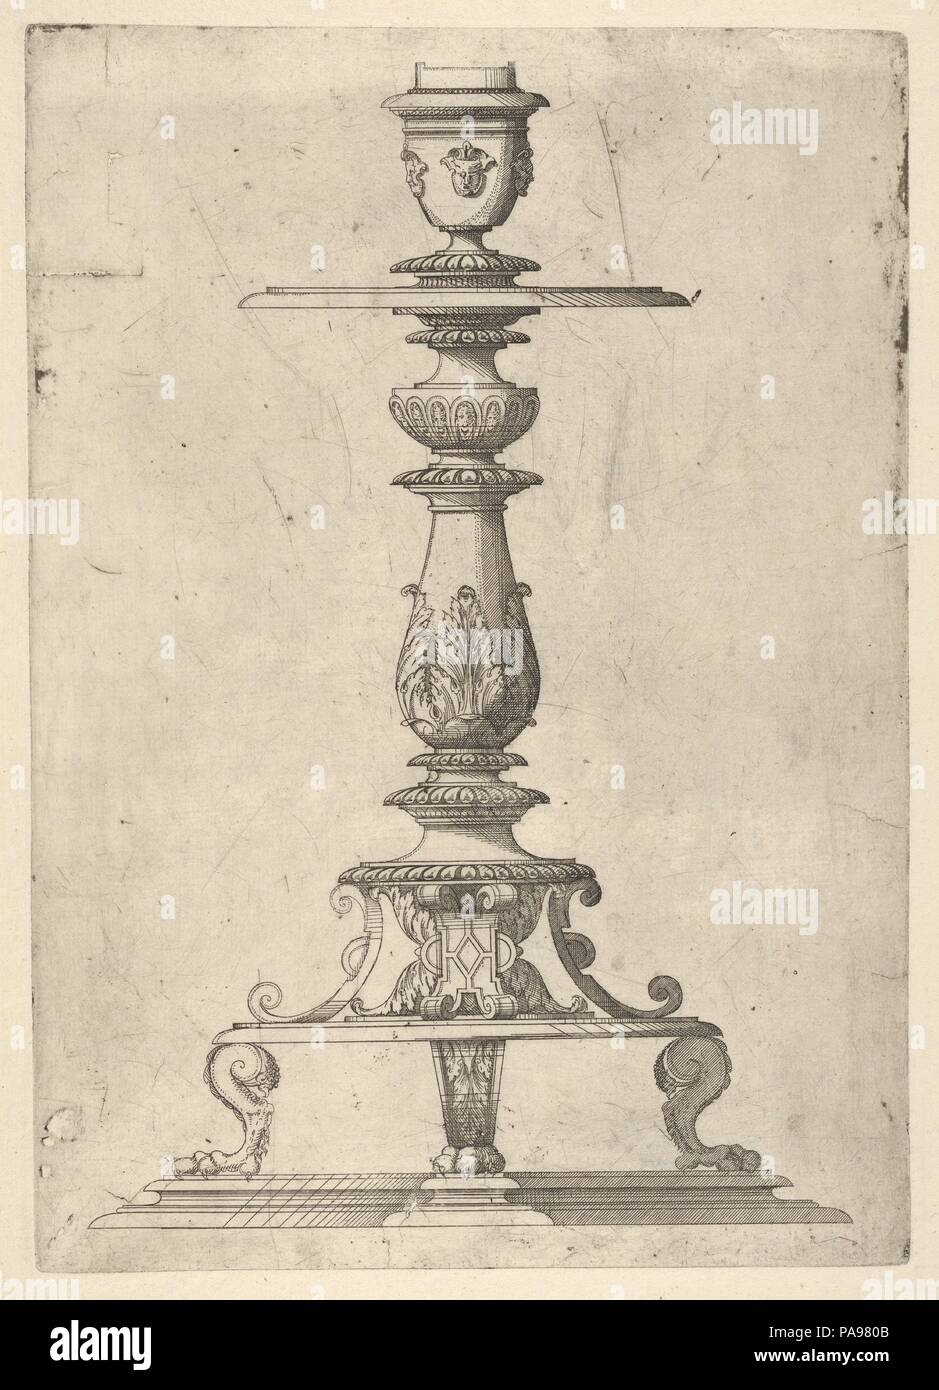 Design for a Candlestick. Artist: Jacques Androuet Du Cerceau (French, Paris 1510/12-1585 Annecy). Dimensions: Plate: 11 5/8 × 8 1/4 in. (29.5 × 21 cm)  Sheet: 14 11/16 × 10 13/16 in. (37.3 × 27.5 cm). Date: 1548-49.  This design for a candlestick was made by the French artist Jacques Androuet Du Cerceau who was a proliferous designer of architecture, ornament and the decorative arts. His style and works are mainly known through the prints and books he produced and published in Orléans. In his works he combines French and Italian elements into heavily ornate designs which were very popular at  Stock Photo